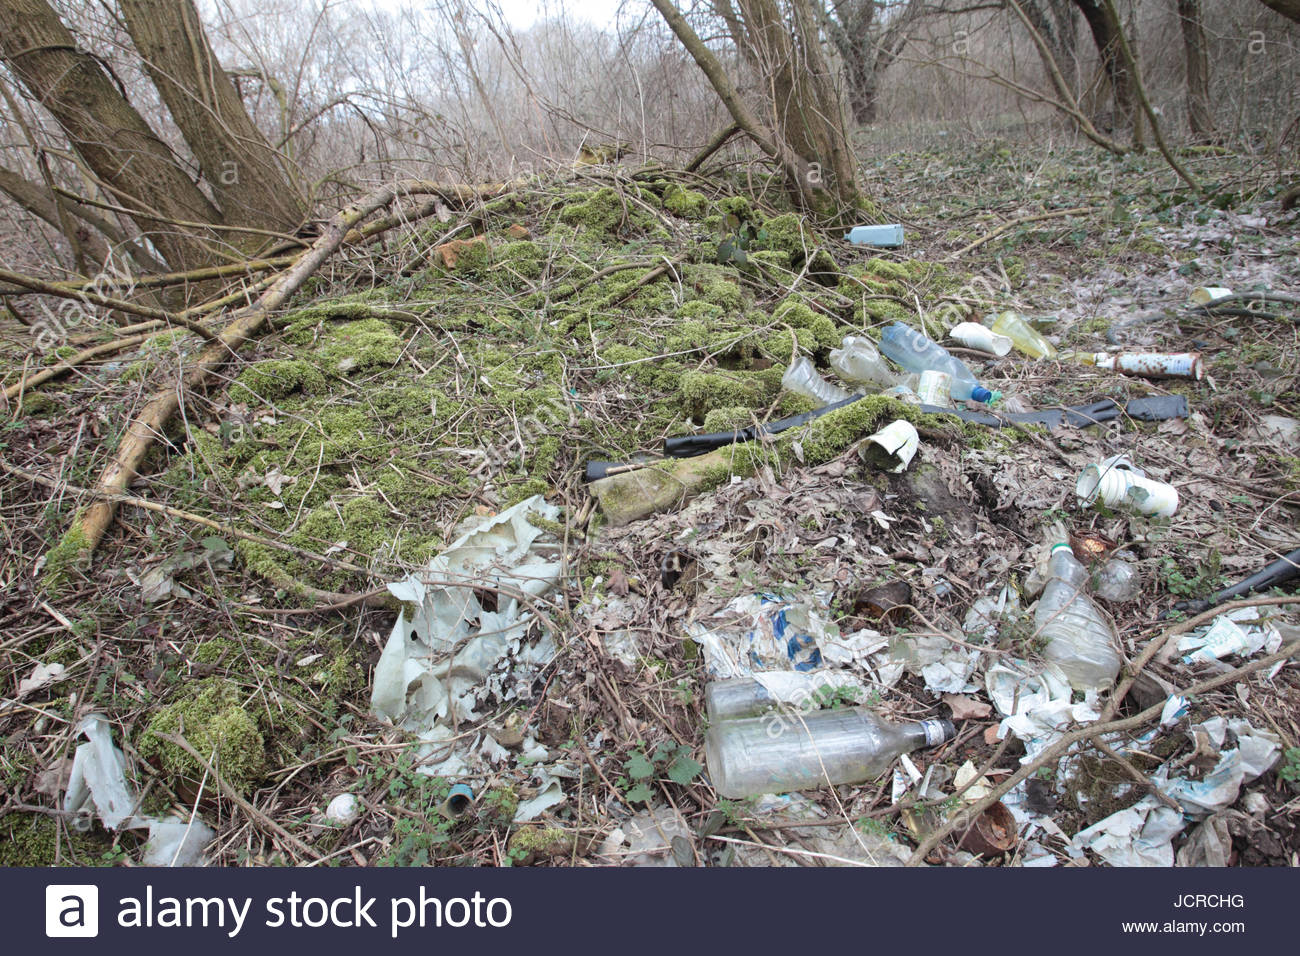 This picture illustrates how nature takes back its space by covering an illegal dump left by people in a forest. - Stock Image